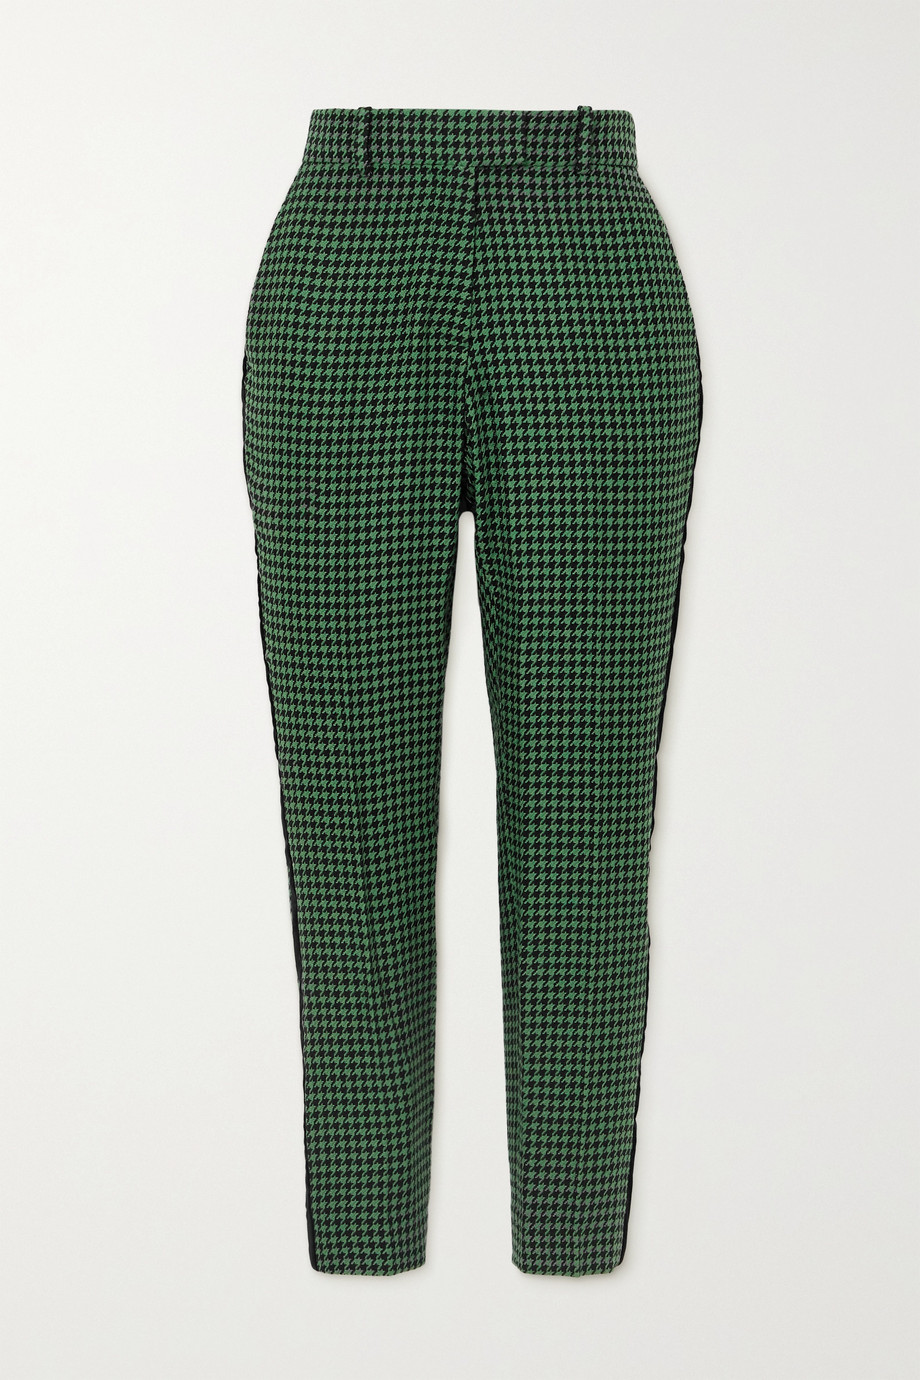 Racil Aries velvet-trimmed houndstooth wool-blend tweed slim-leg pants